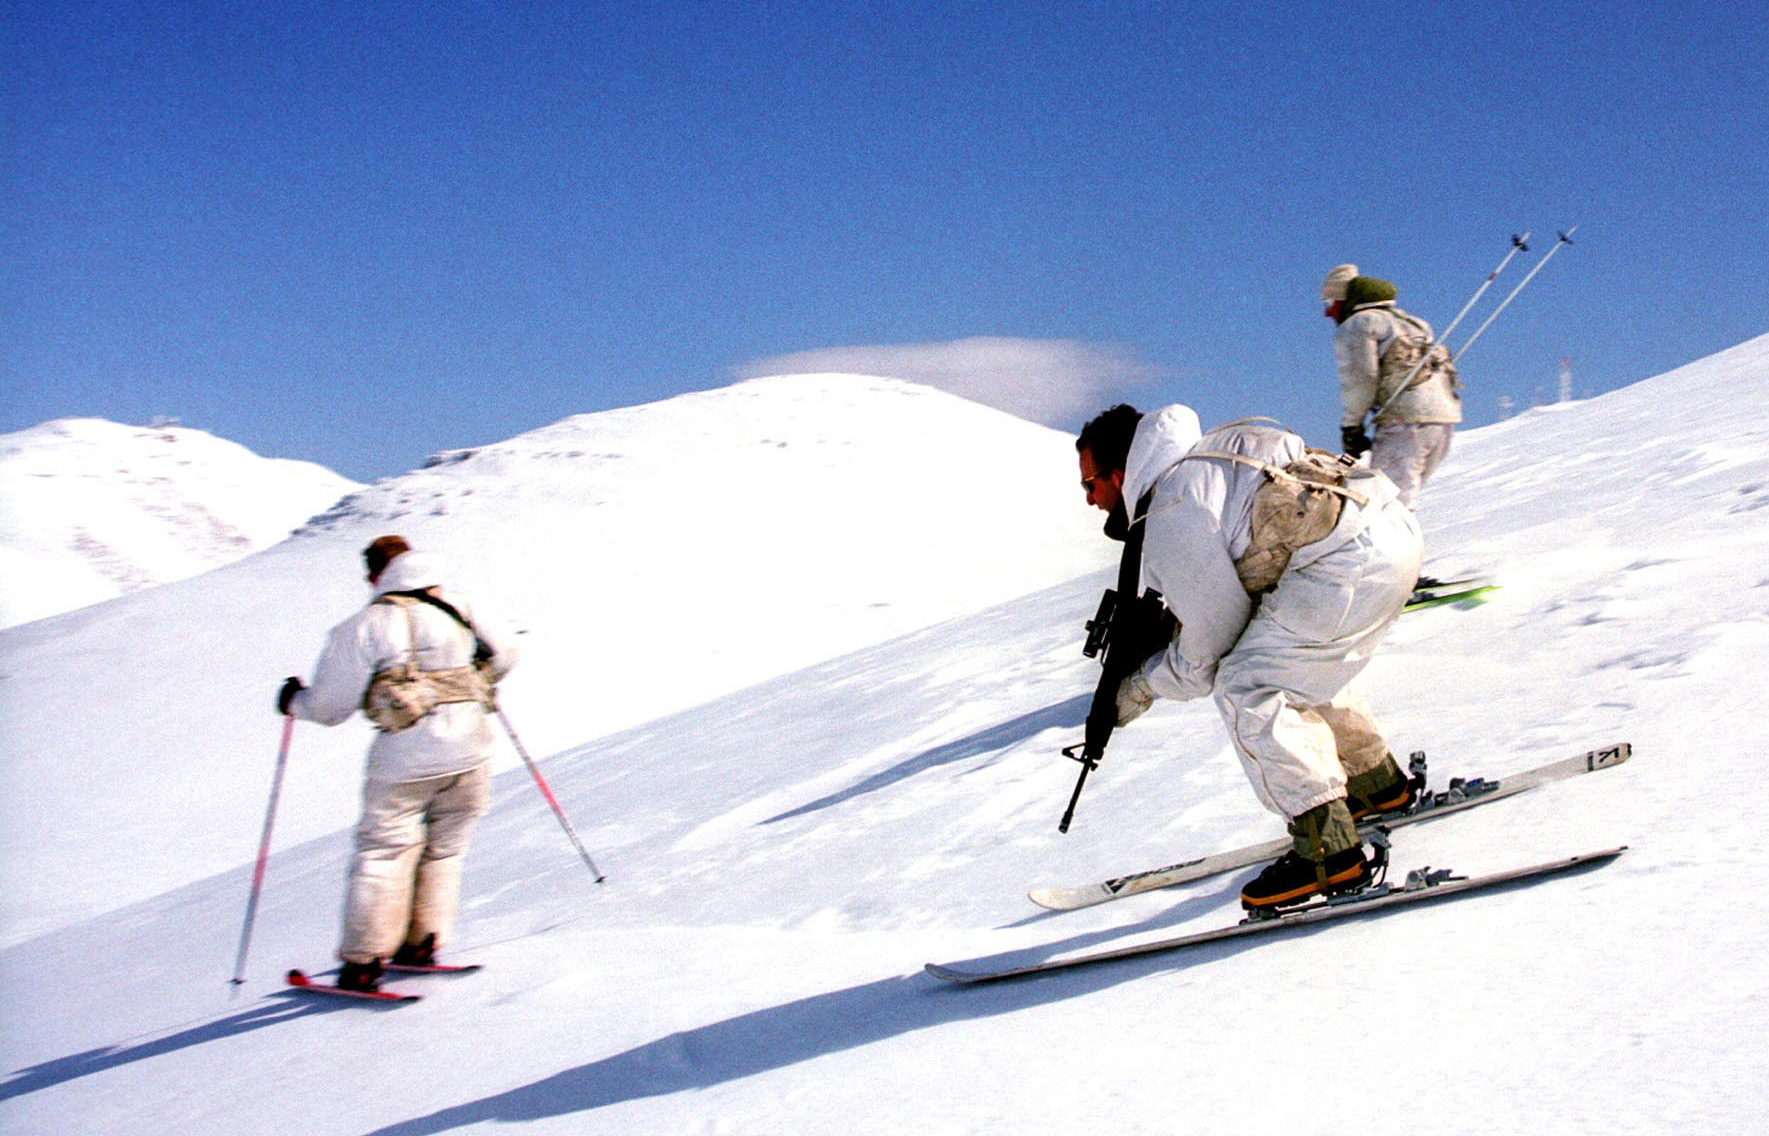 Файл:Flickr - Israel Defense Forces - Down the Slopes.jpg